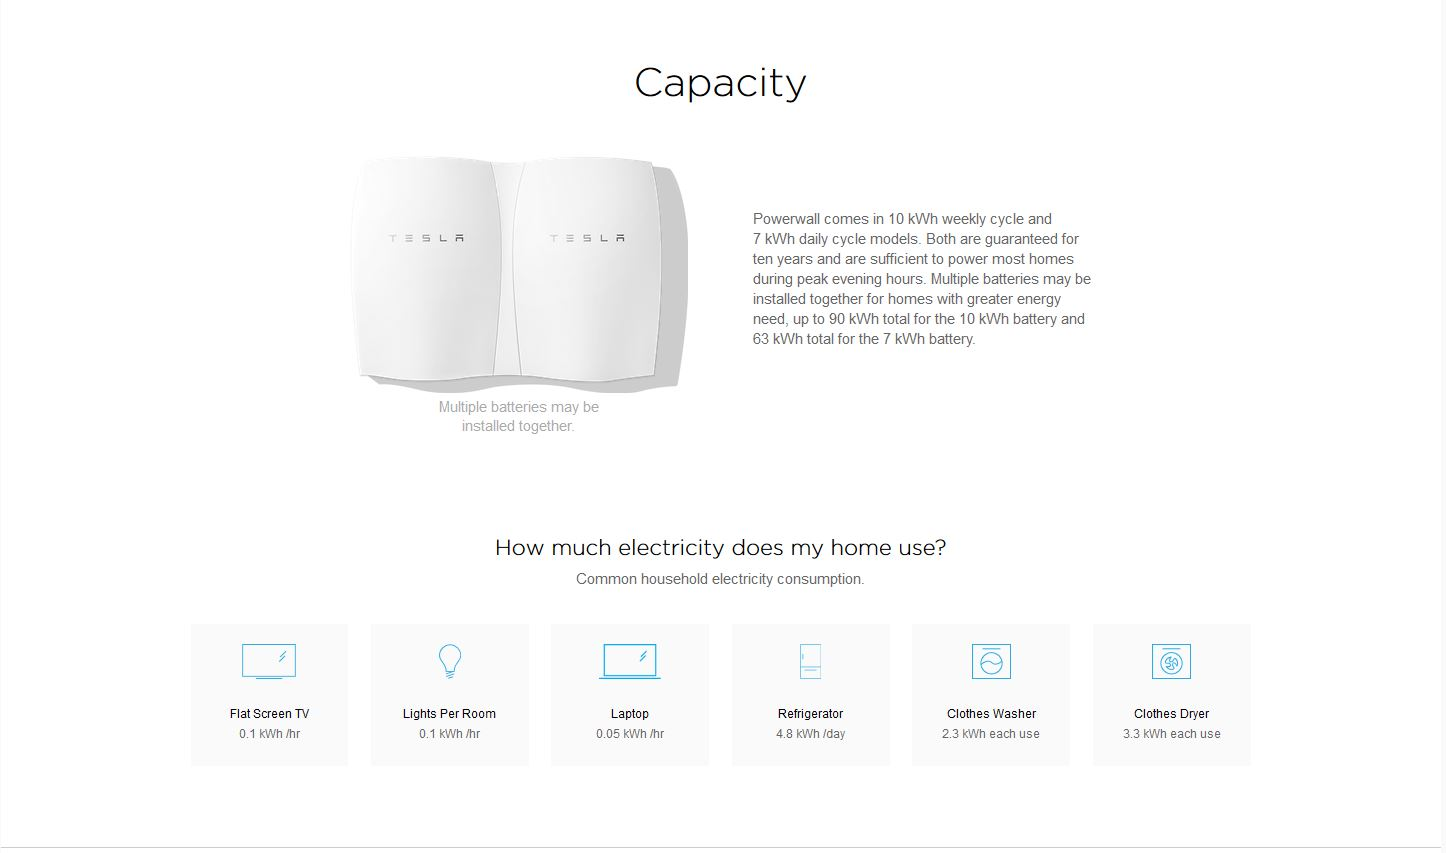 Tesla Powerwall capacity: in 10 kWh weekly cycle and 7 kWh daily cycle models.